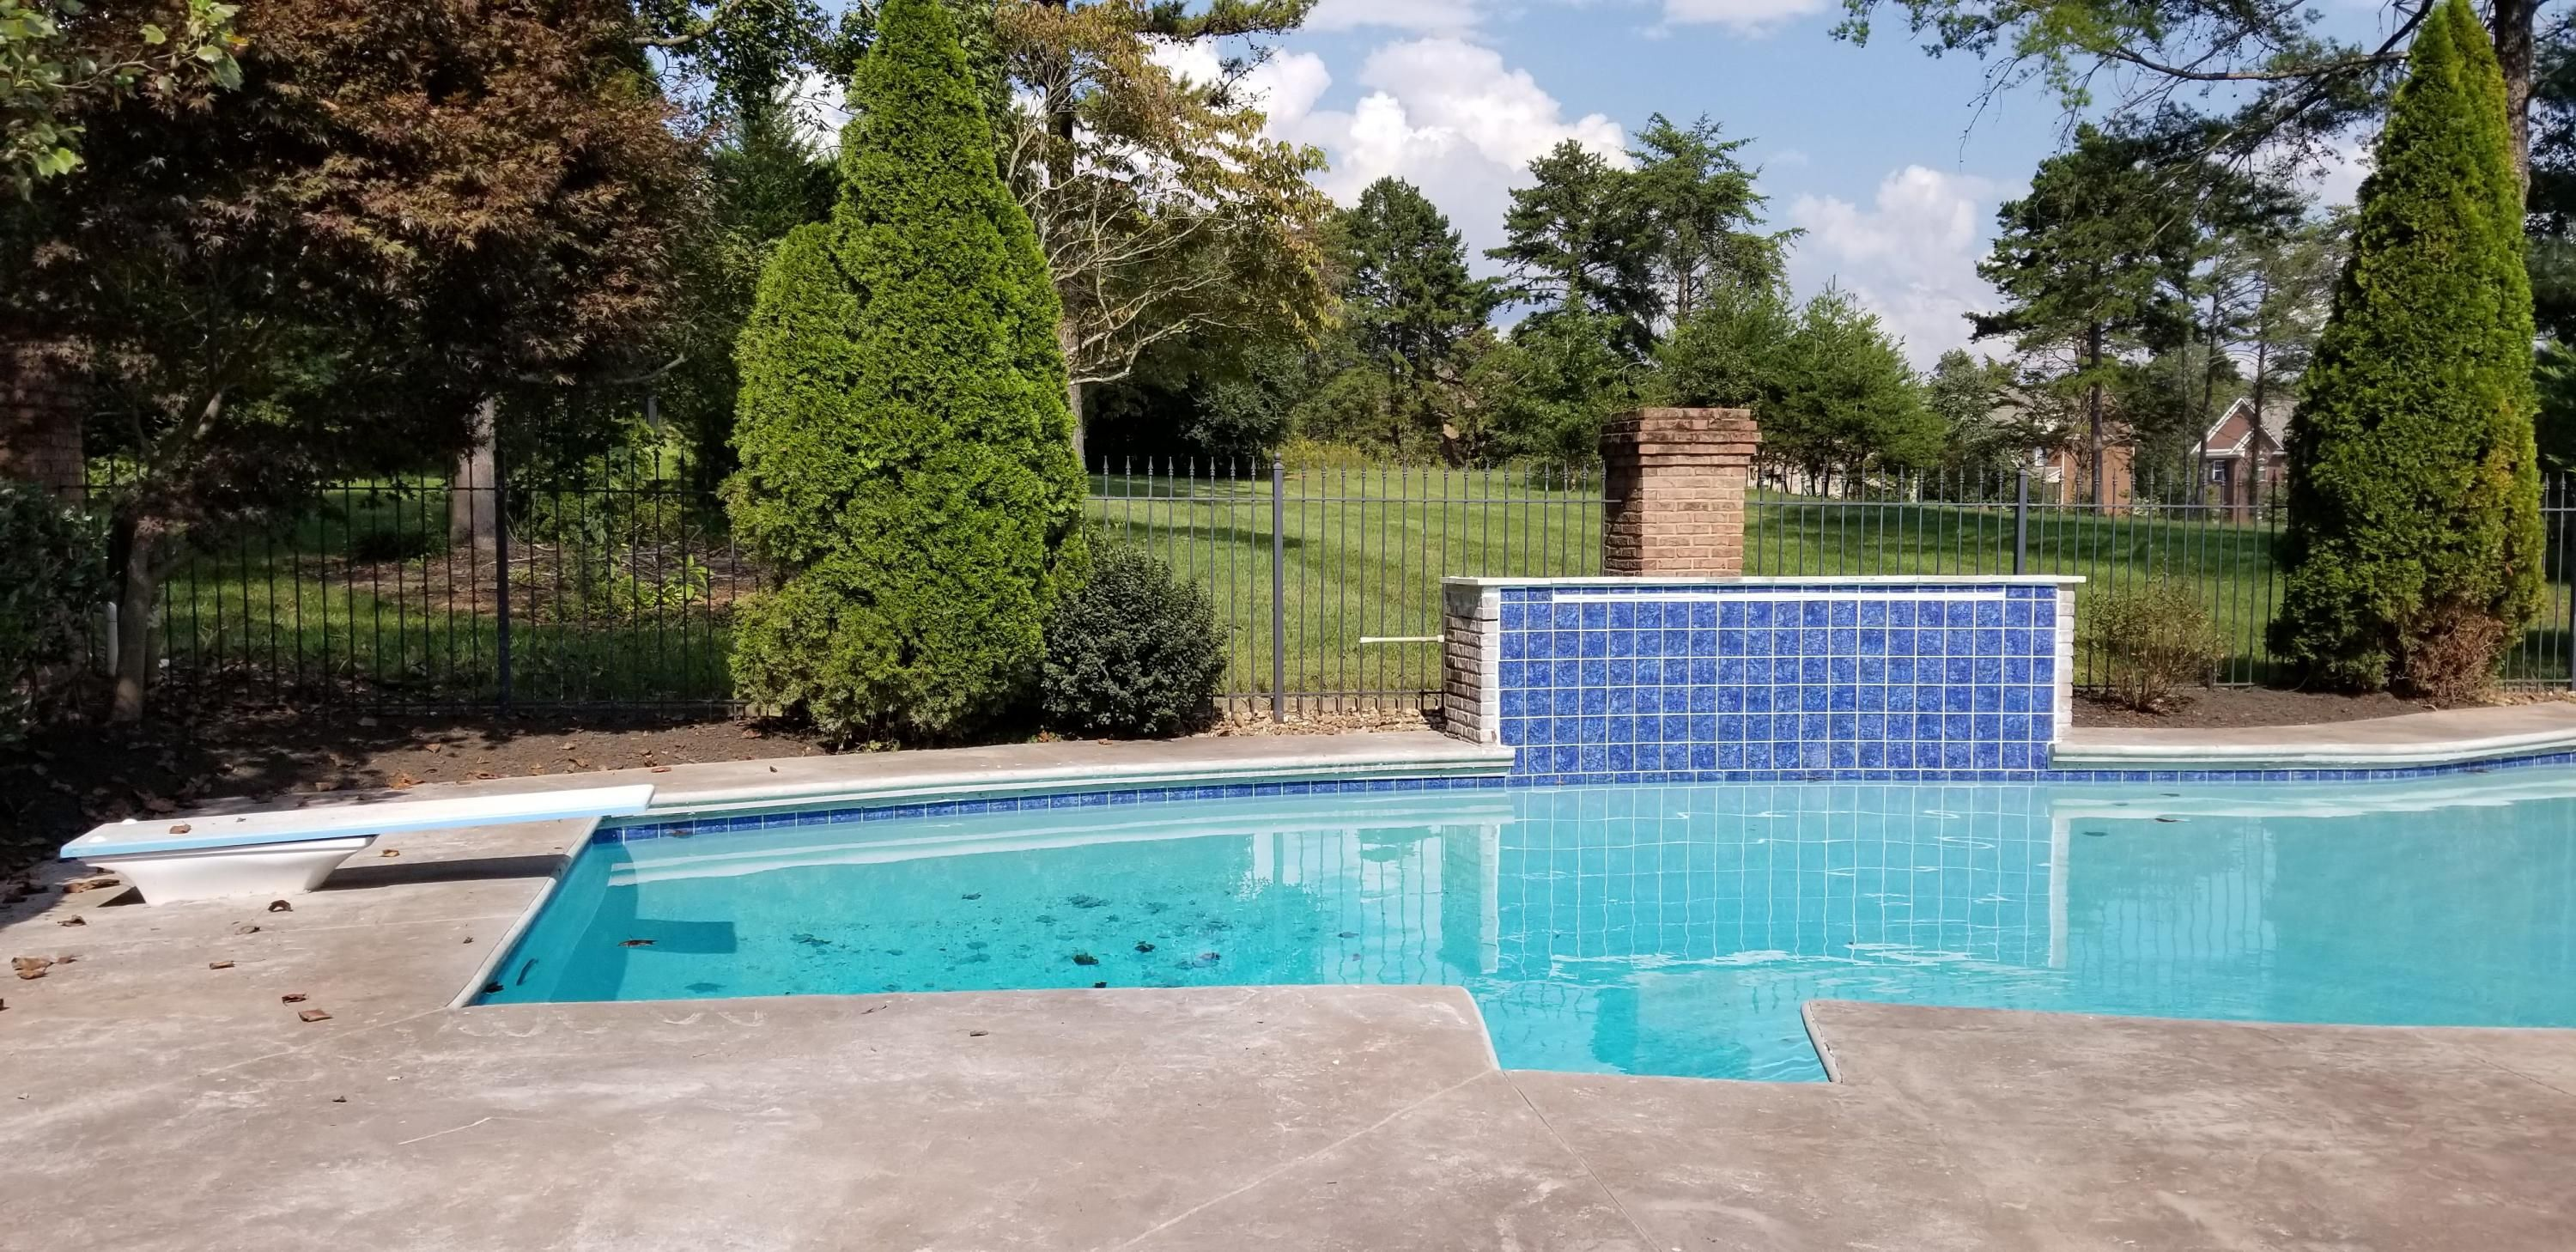 Diving Board on pool